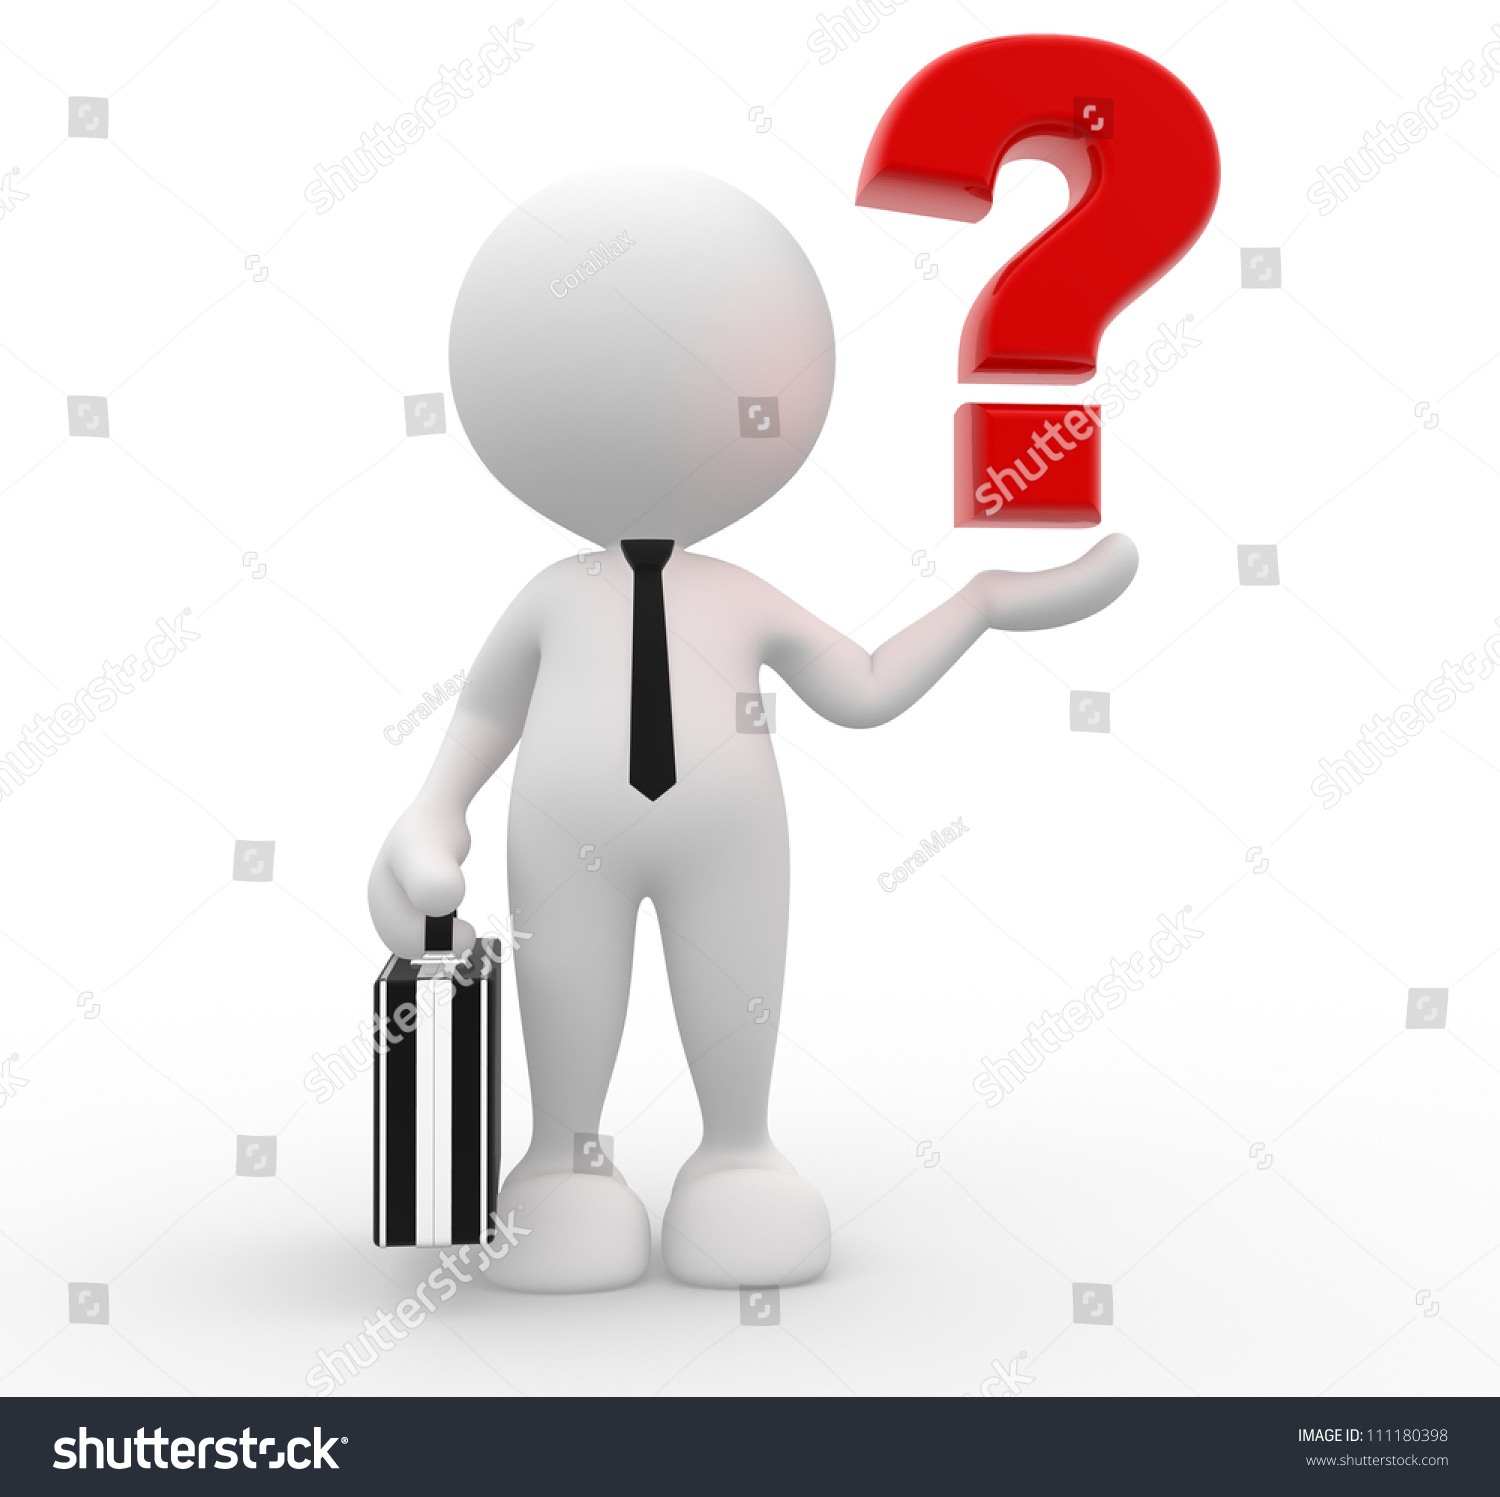 3d person with magnifying glass and question mark stock images image - 3d People Man Person With A Question Mark Businessman